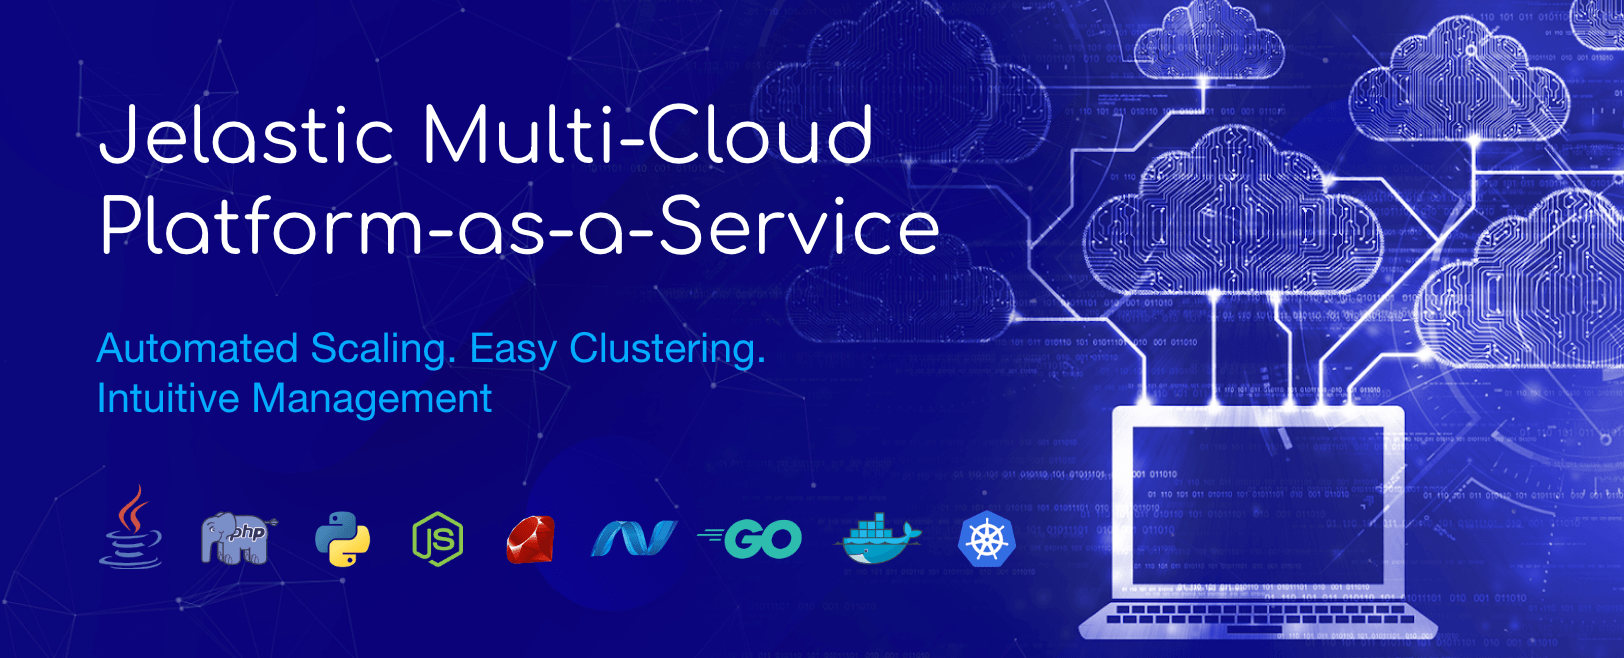 jelastic multi-cloud paas